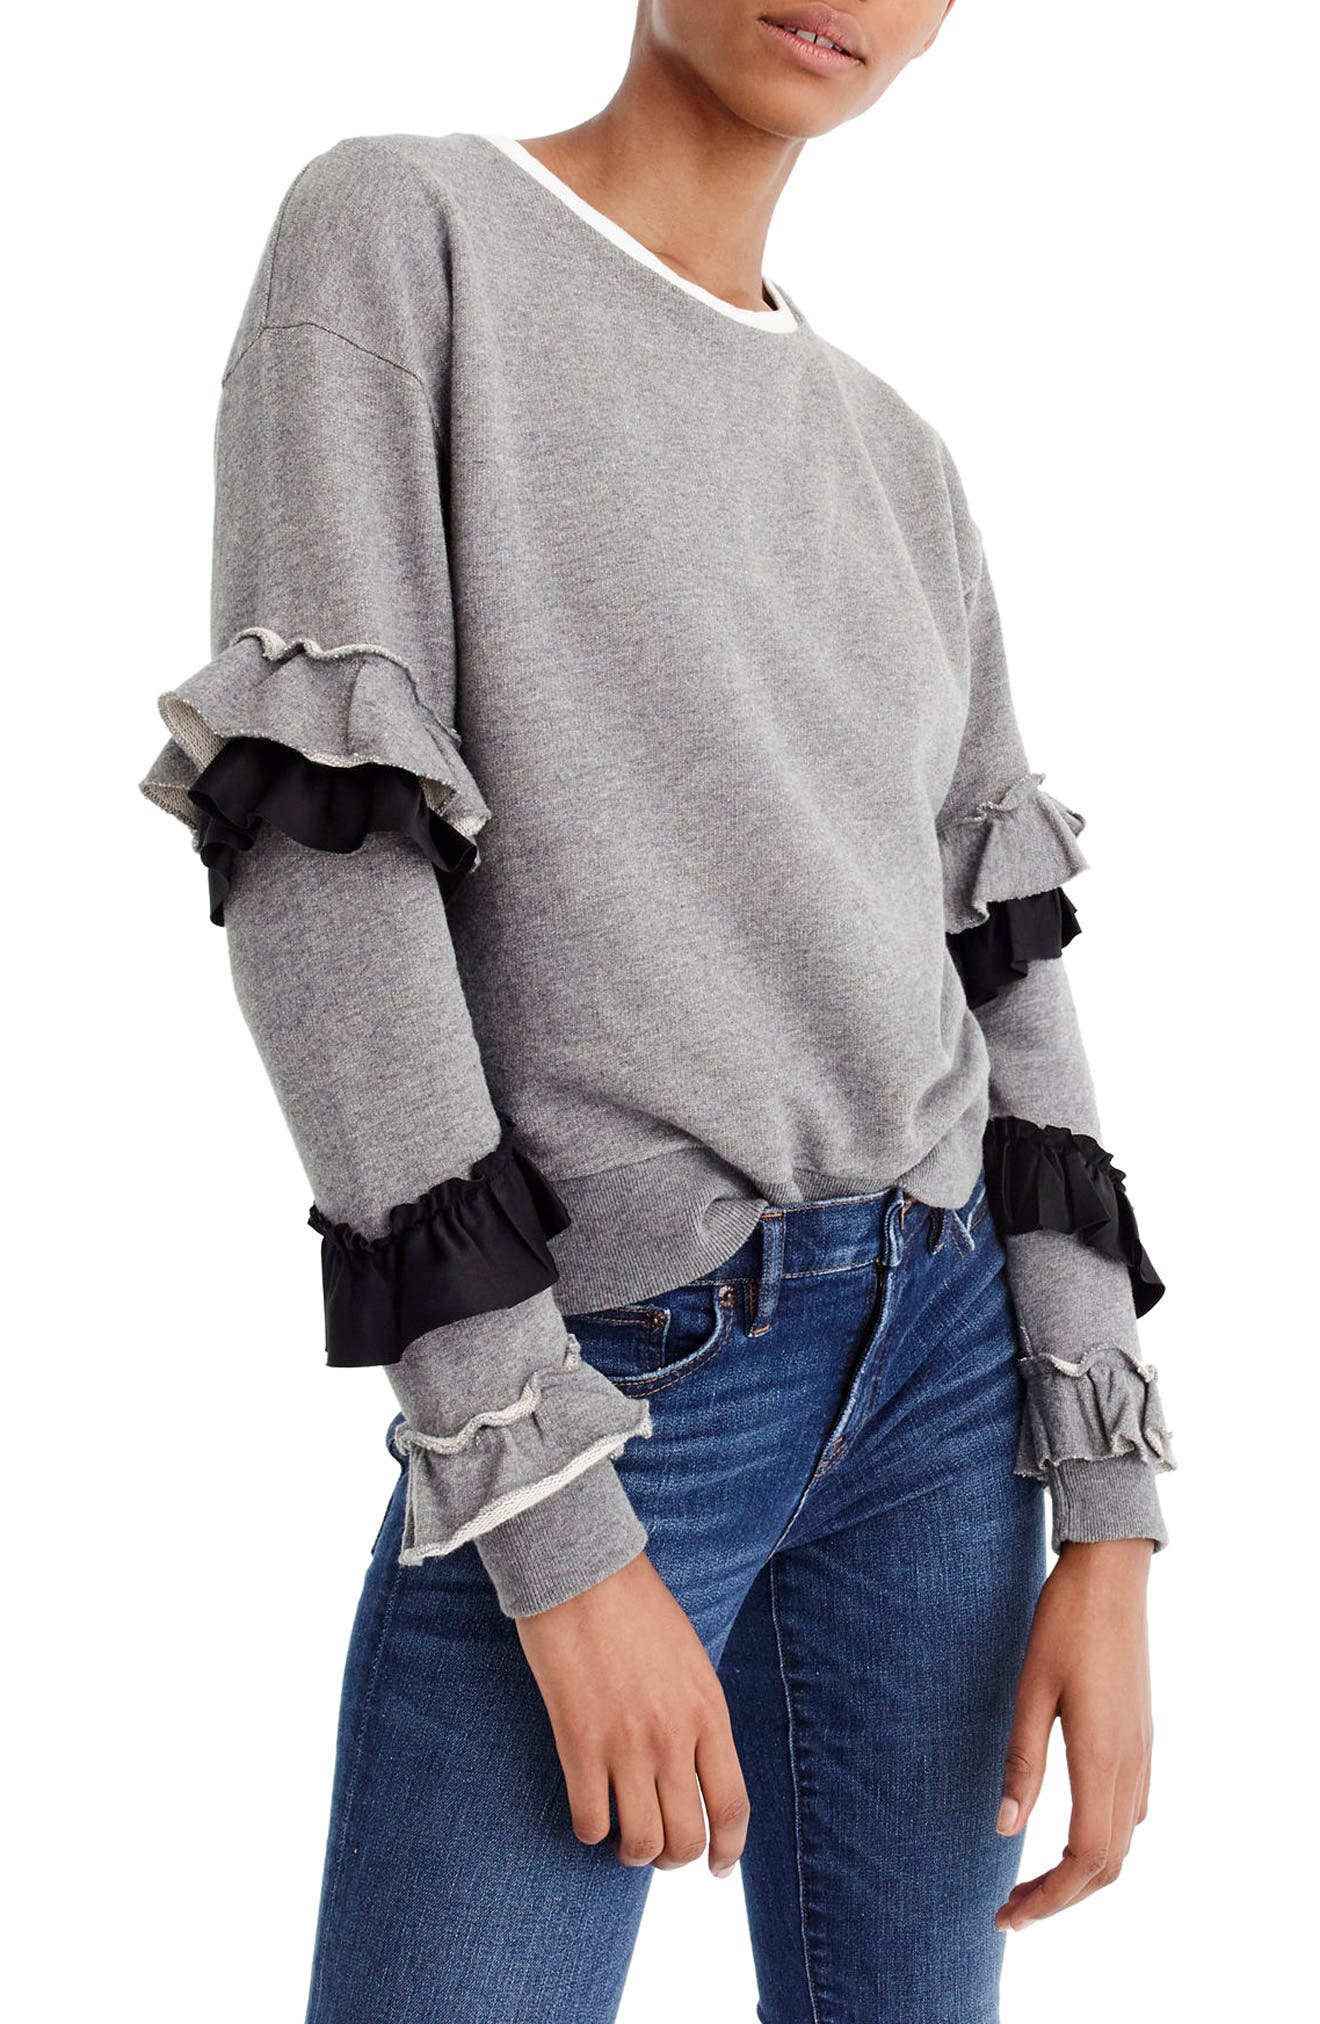 Ruffle Sleeve Sweatshirt,                             Main thumbnail 1, color,                             090